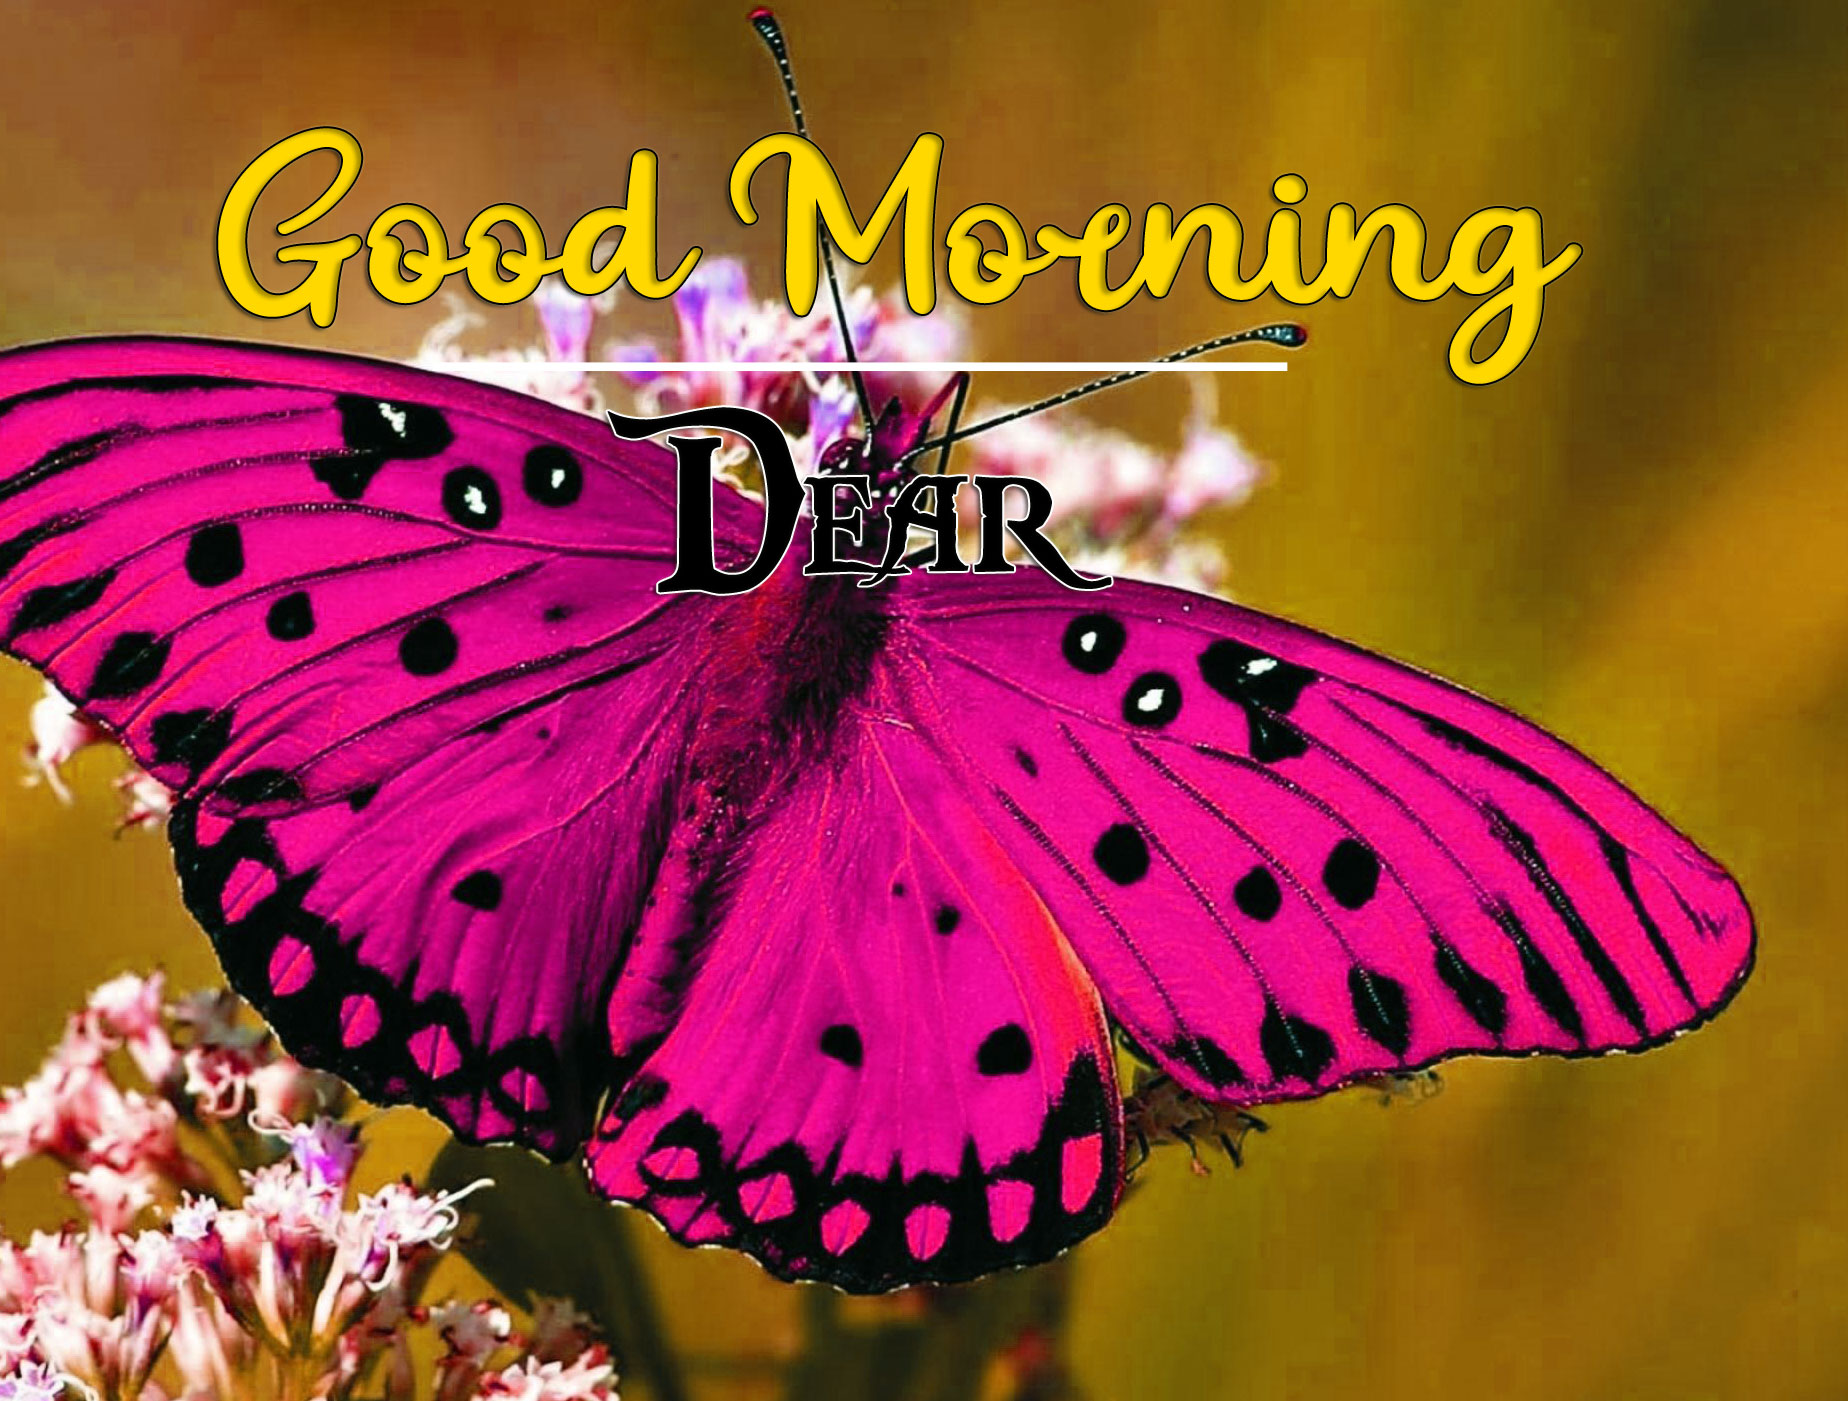 Good Morning Wishes Images HD 1080p 33